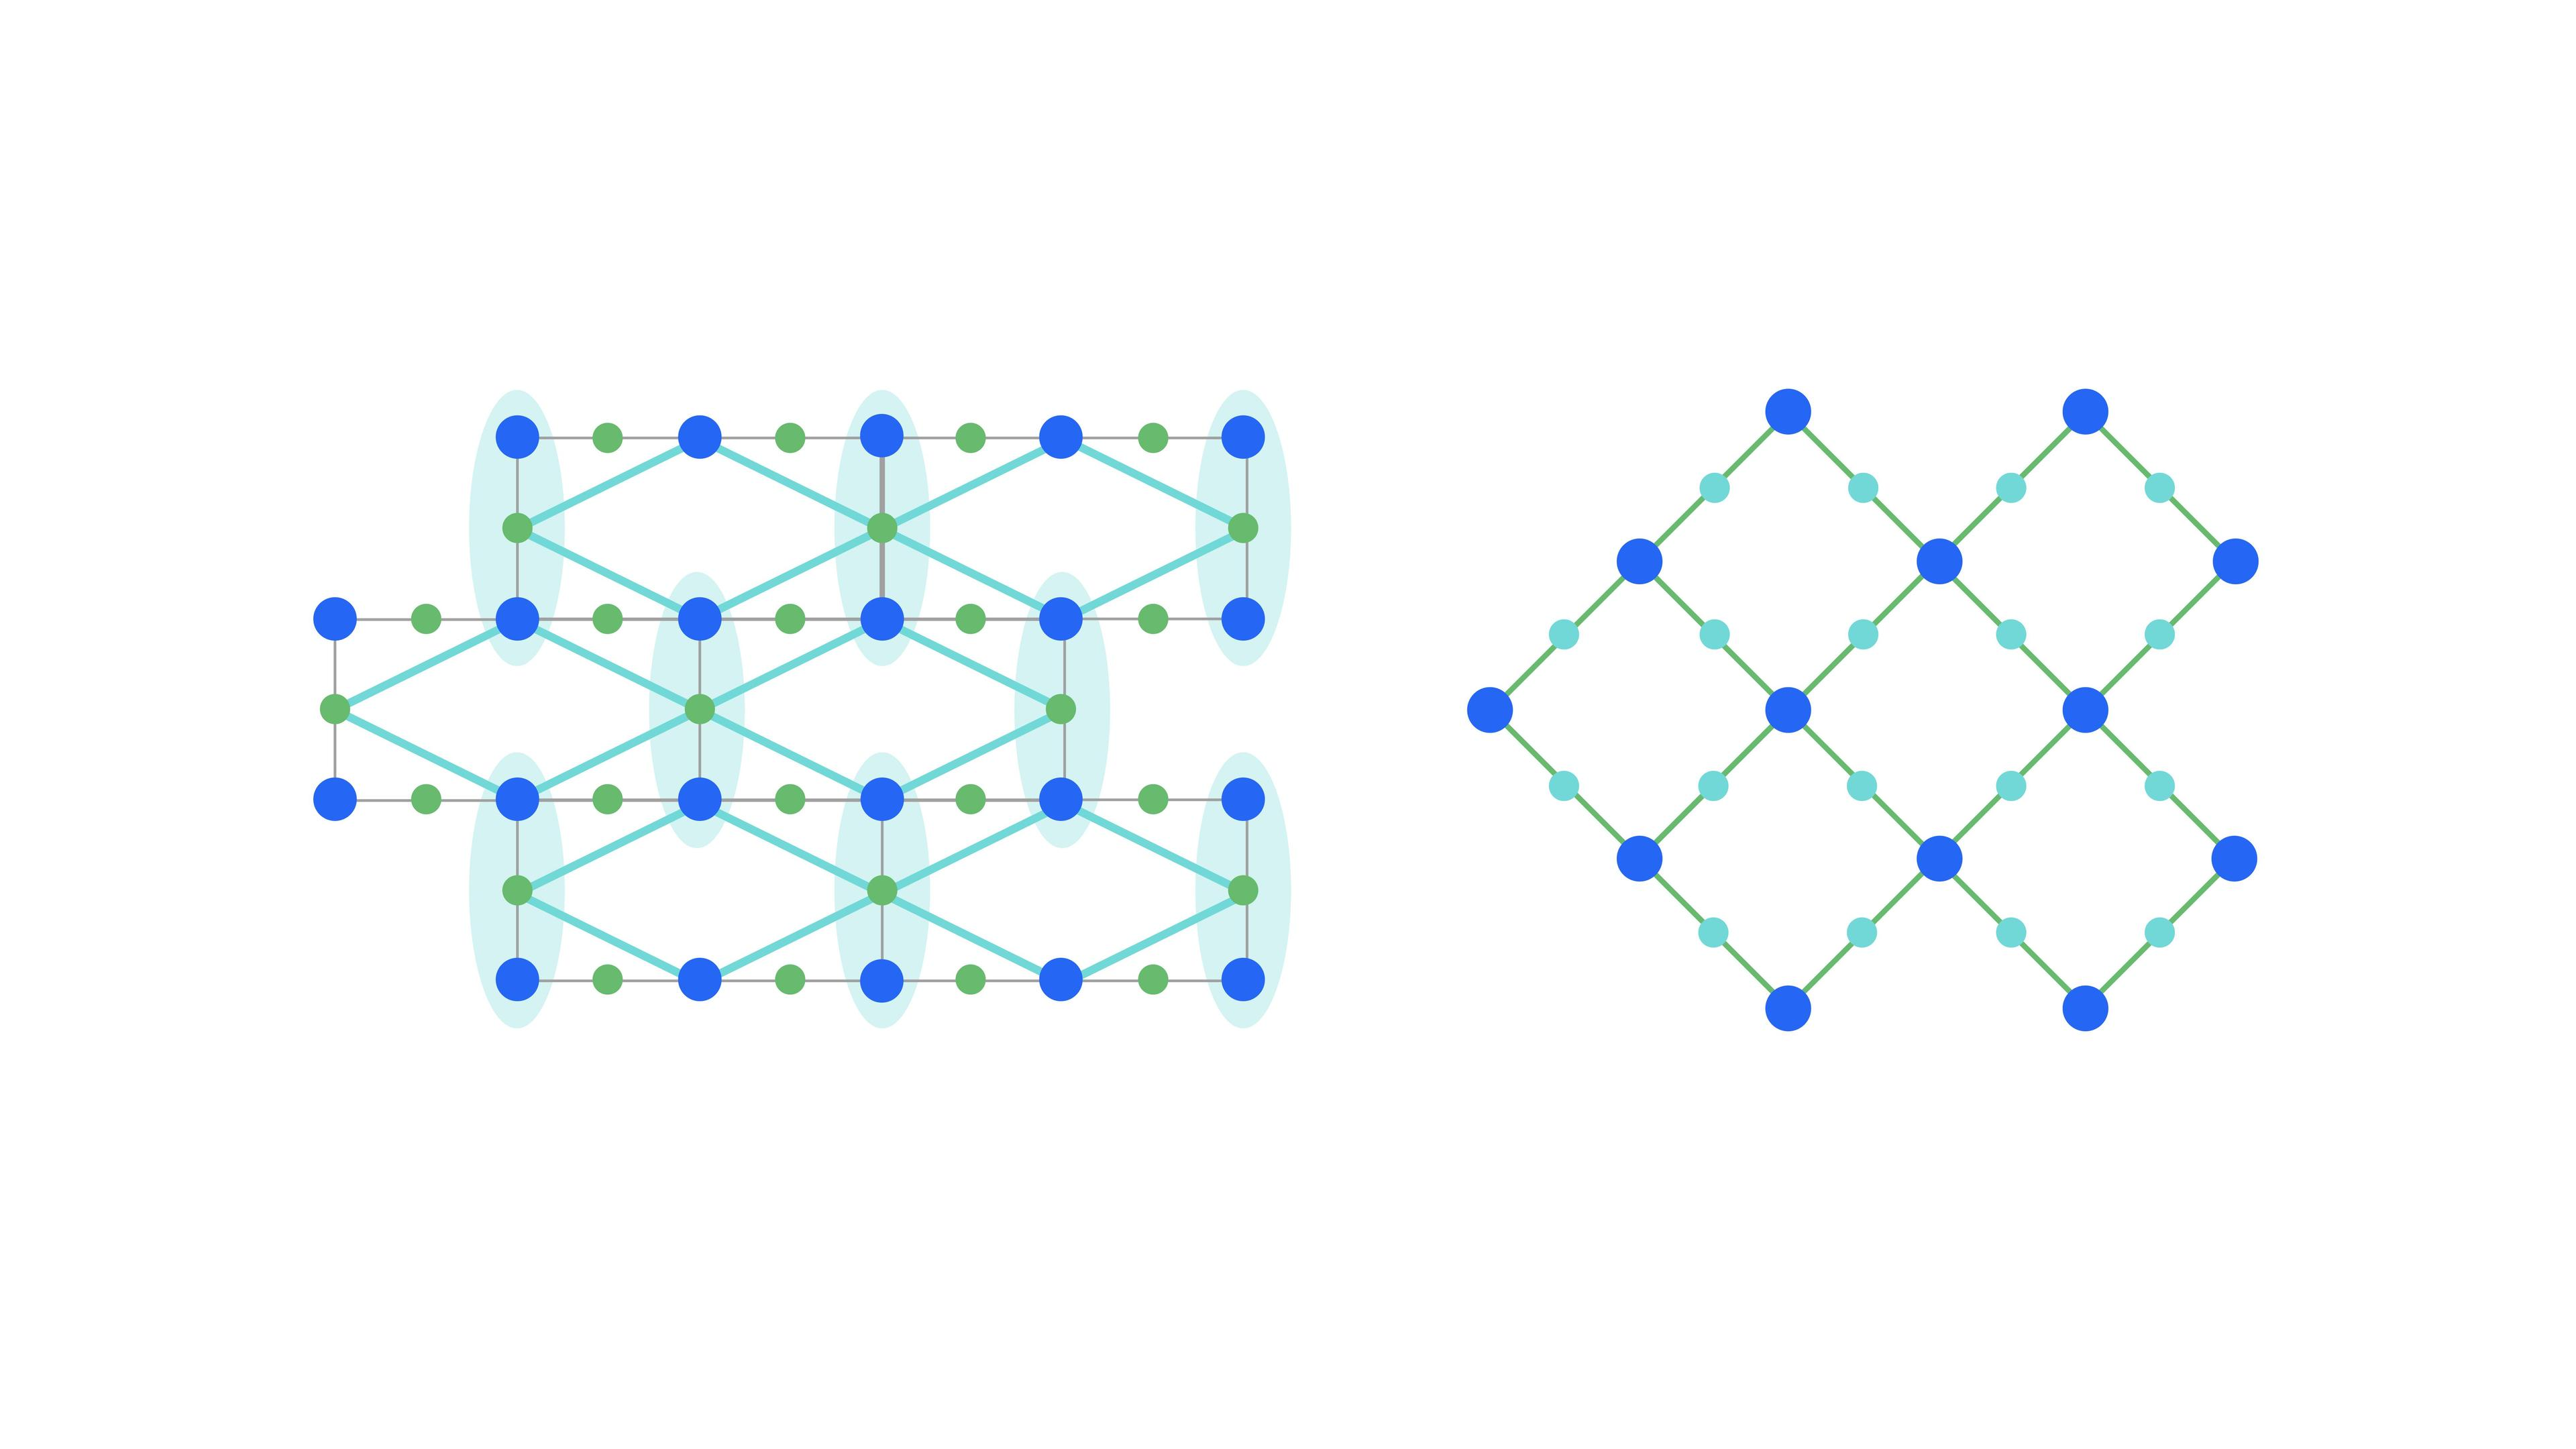 Encoding into the 3-qubits repetition code (left) leads to a logical heavy square lattice (right).